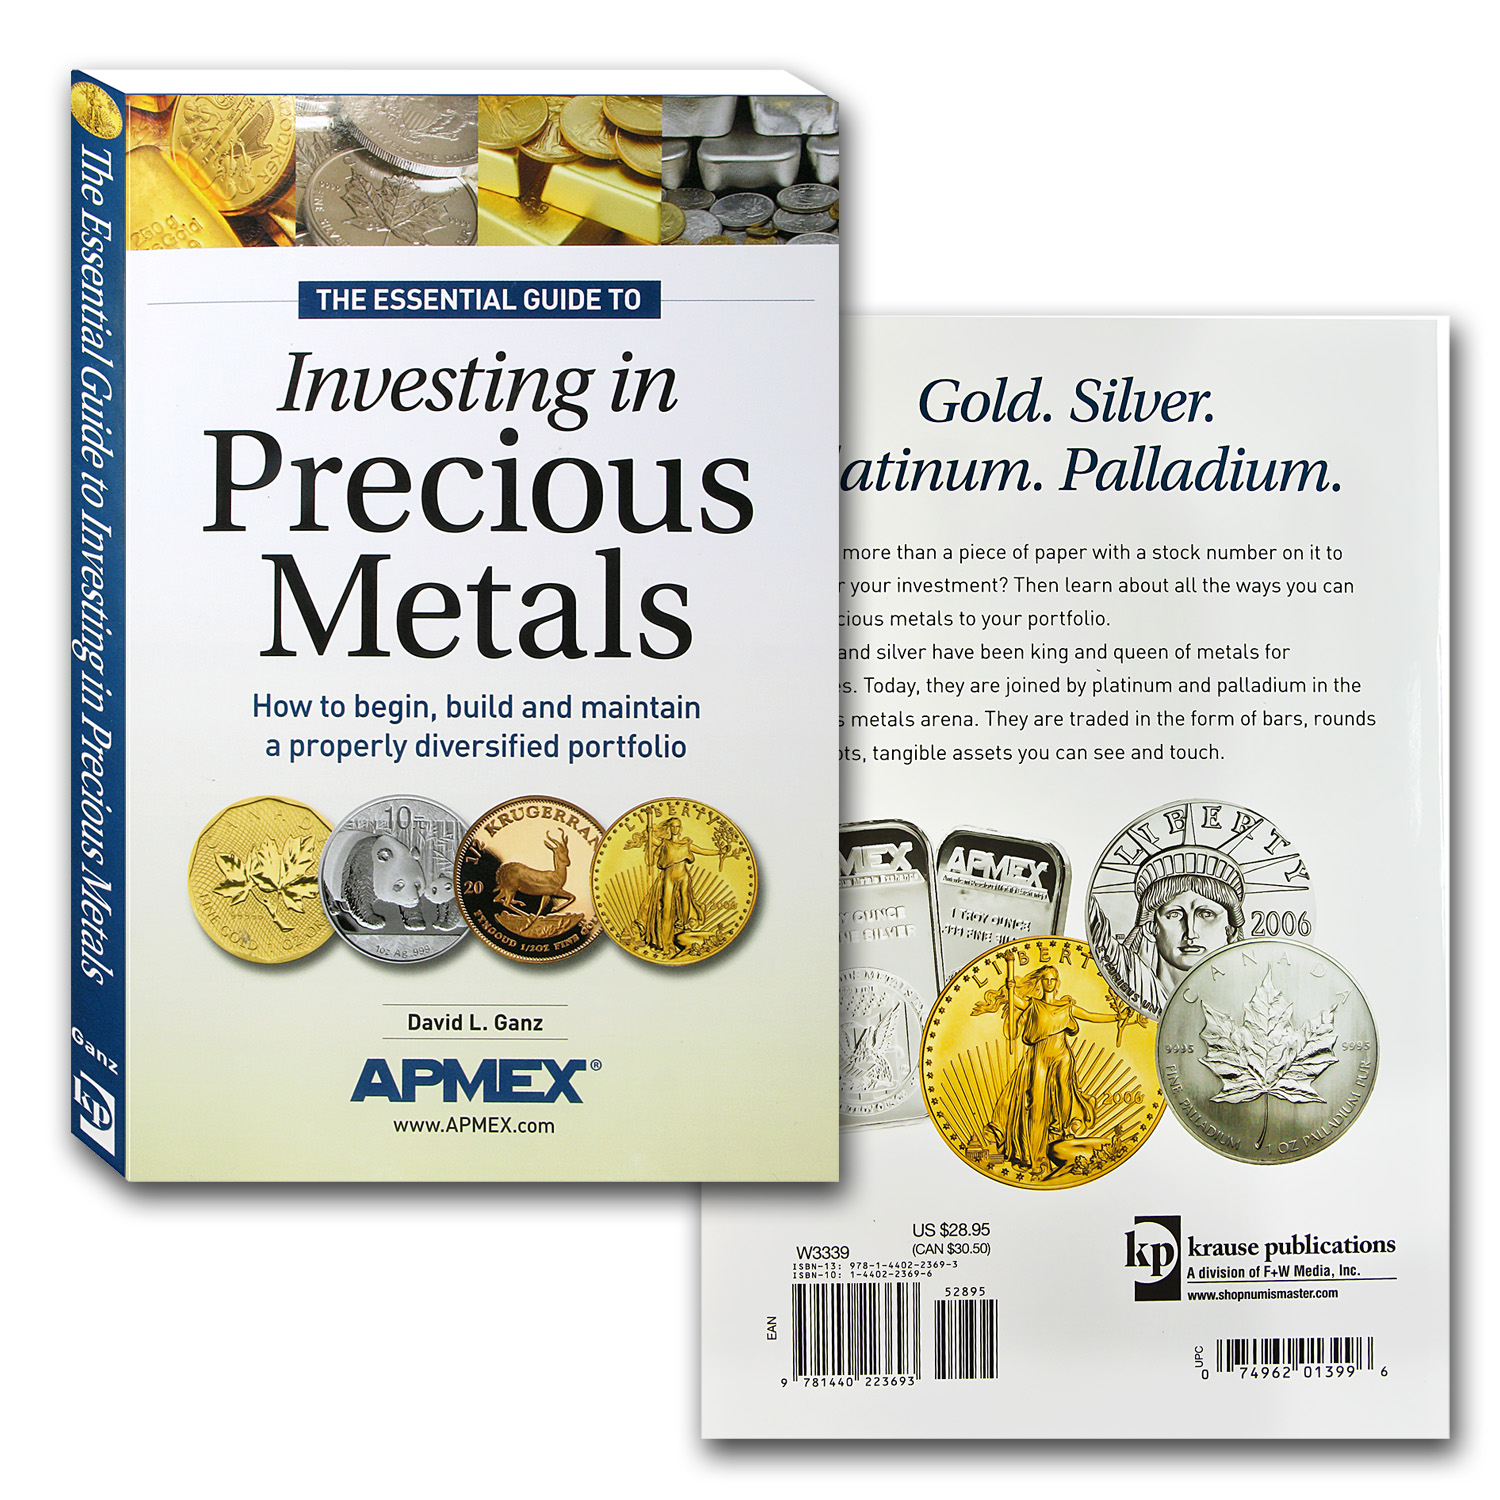 The Essential Guide to Investing in Precious Metals